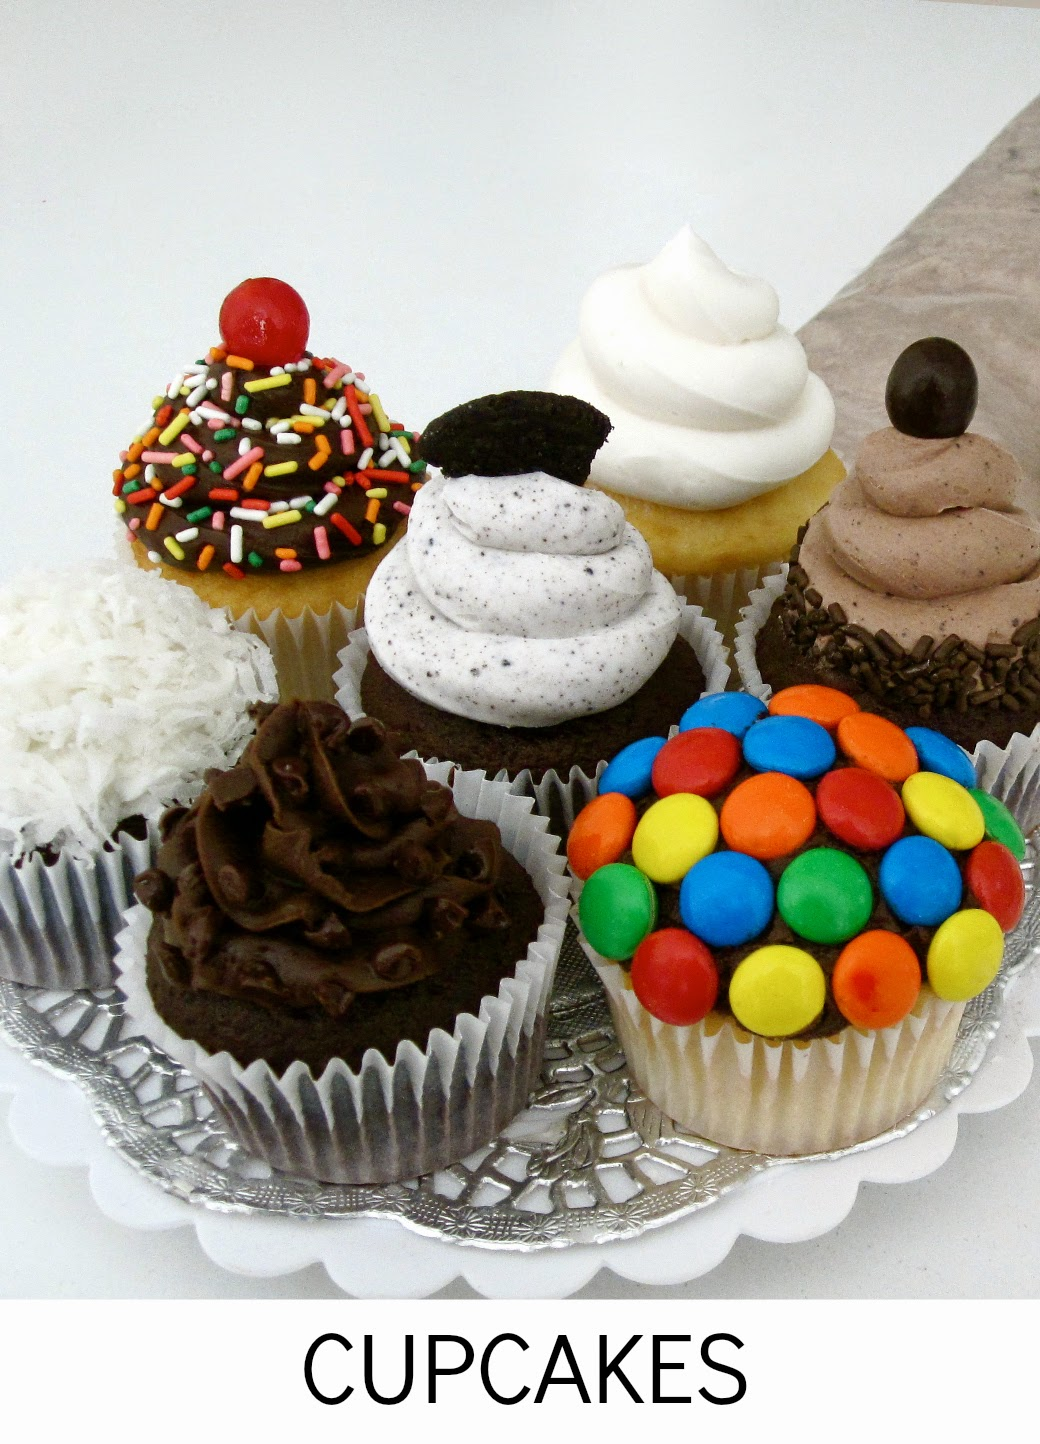 http://blog.dollhousebakeshoppe.com/2011/01/recipes-cupcakes.html